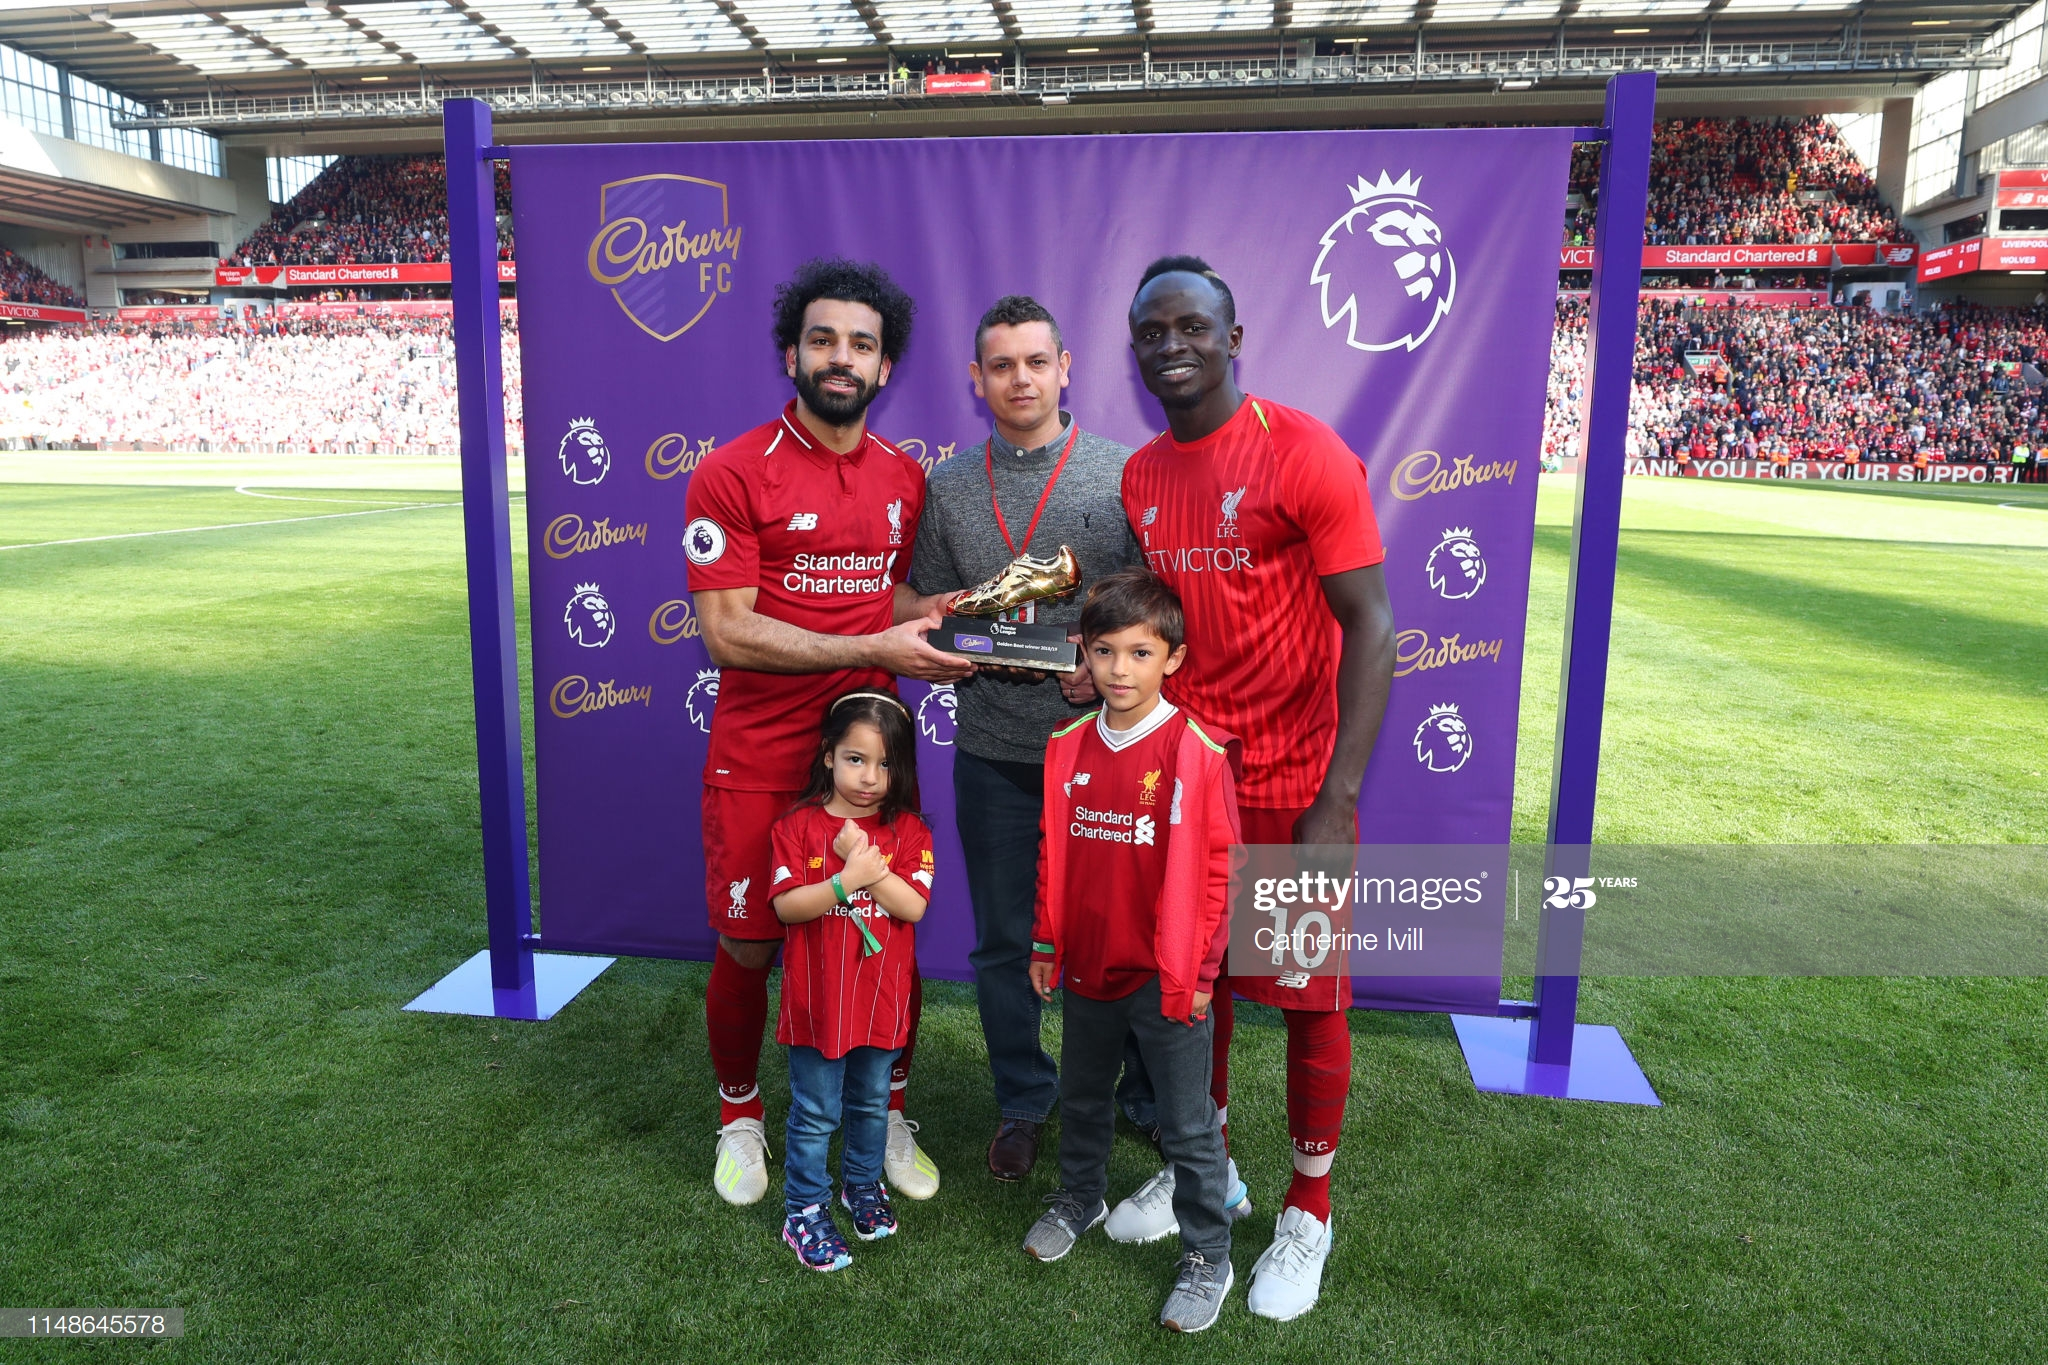 LIVERPOOL, ENGLAND - MAY 12: Mohamed Salah of Liverpool and Sadio Mane of Liverpool pose with the golden boot trophy after the Premier League match between Liverpool FC and Wolverhampton Wanderers at Anfield on May 12, 2019 in Liverpool, United Kingdom. (Photo by Catherine Ivill/Getty Images)